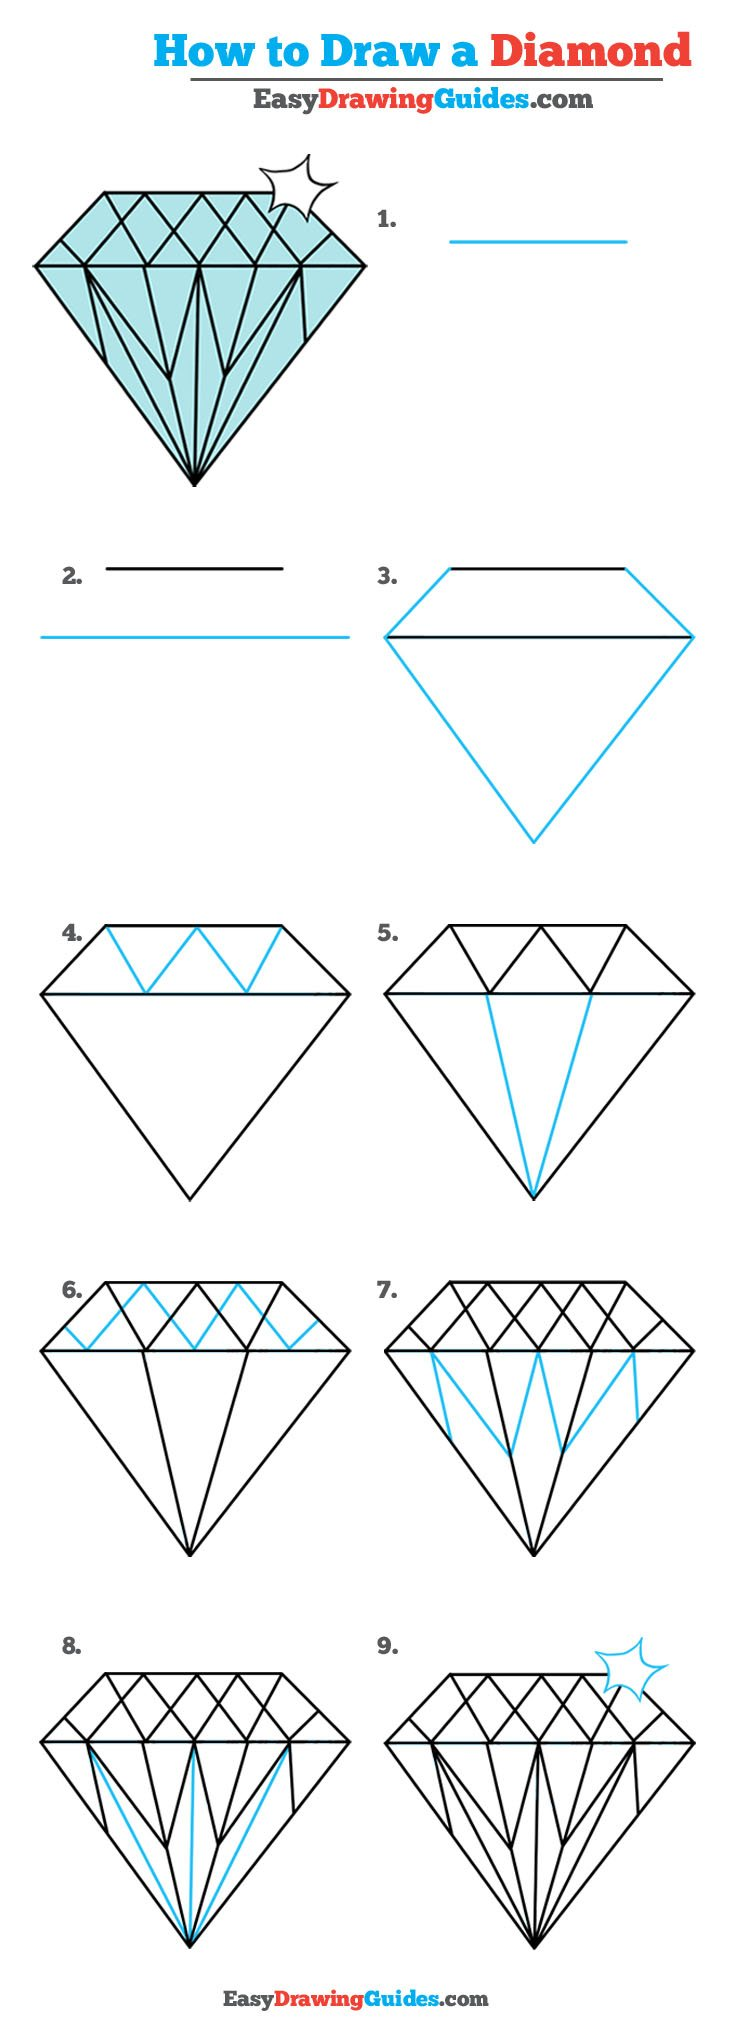 How to Draw Diamond